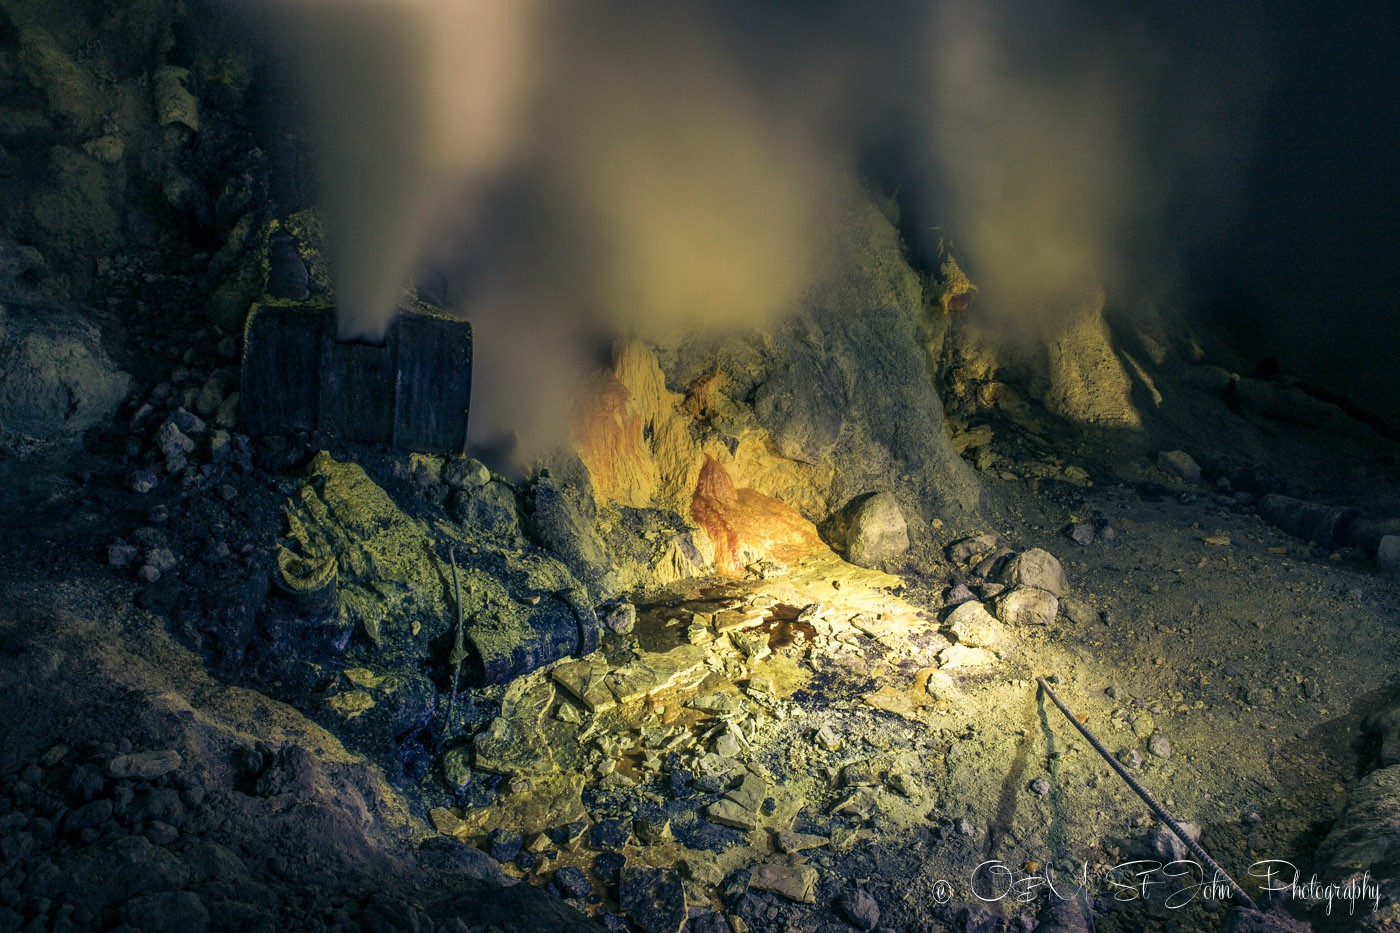 Sulfur fumes at the heart of Ijen Crater, East Java. Indonesia